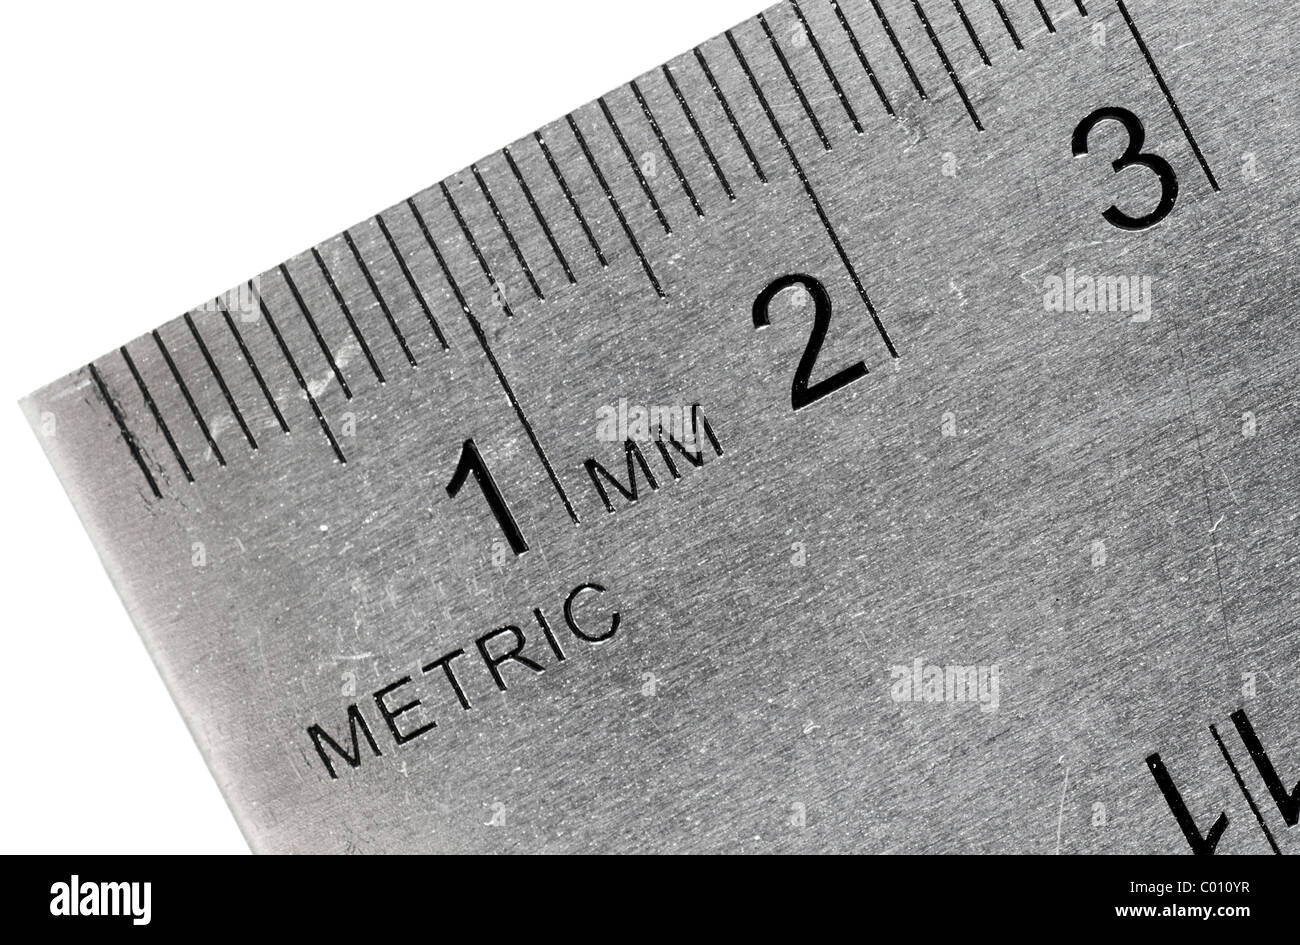 Macro shot of an industrial stainless steel ruler, metric side. Stock Photo